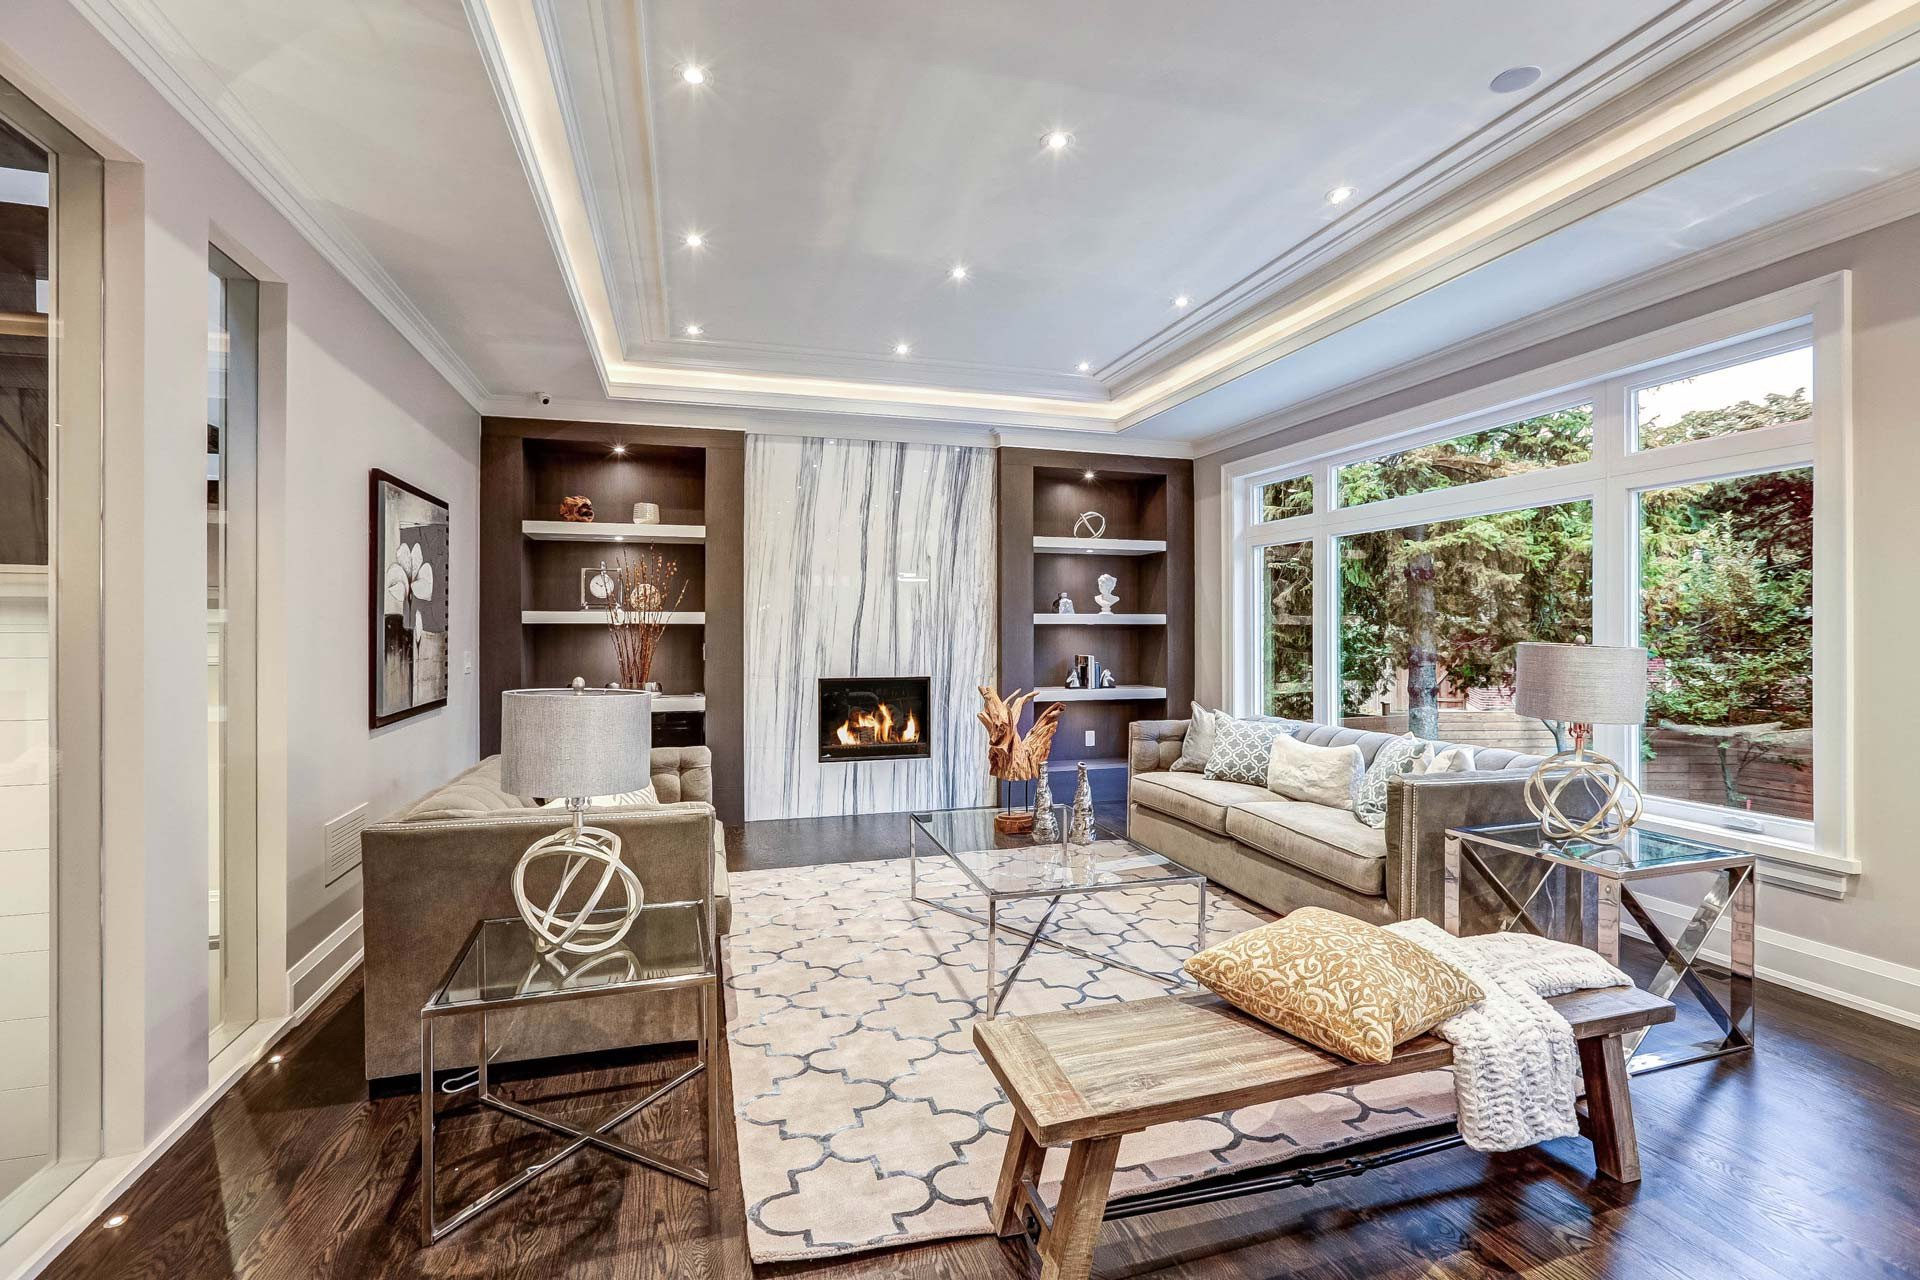 High End Home Decor Websites Elegant Real Estate S Marketing Feature Sheets Virtual tours toronto – Imaginahome Offers High